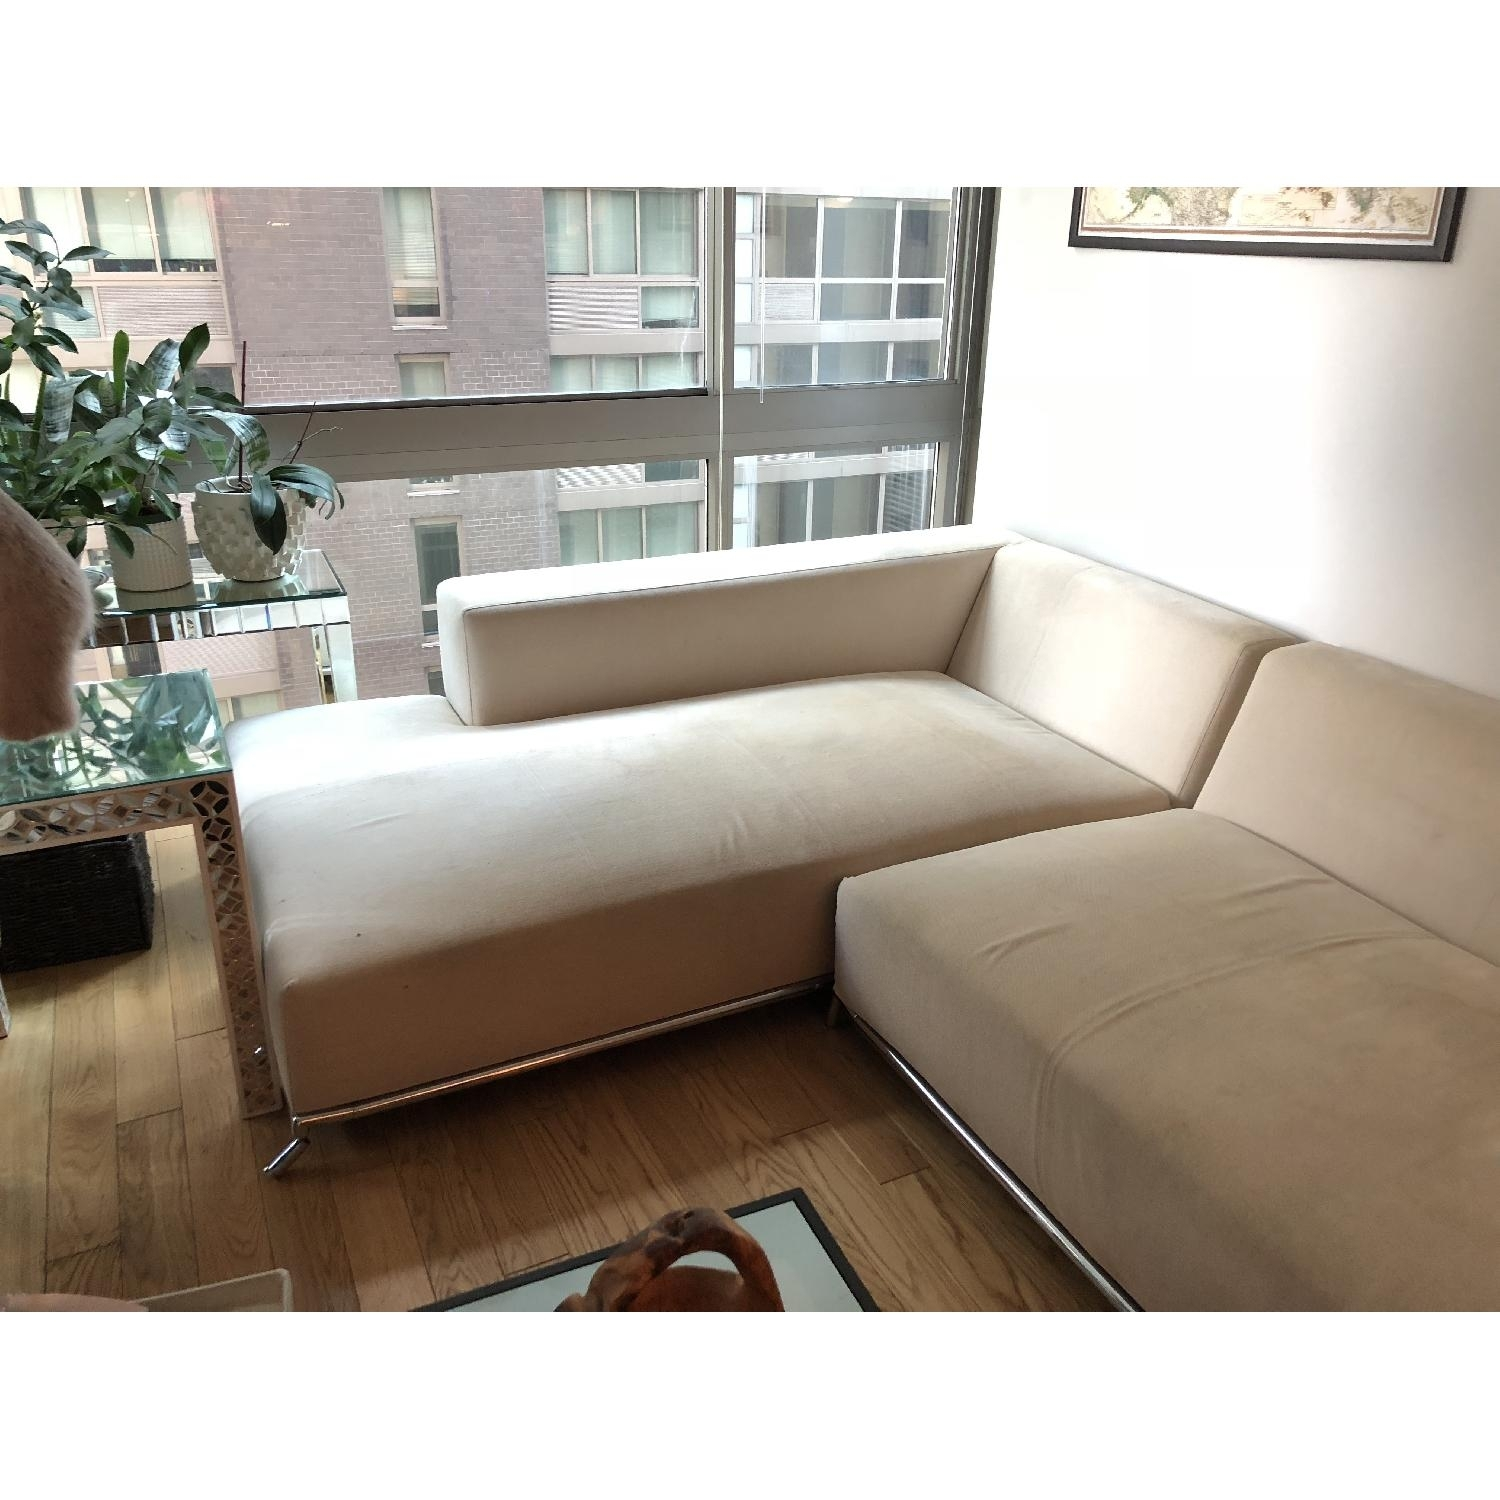 2 Piece Chaise Sectional Sofa | Baci Living Room with Tenny Cognac 2 Piece Left Facing Chaise Sectionals With 2 Headrest (Image 2 of 30)